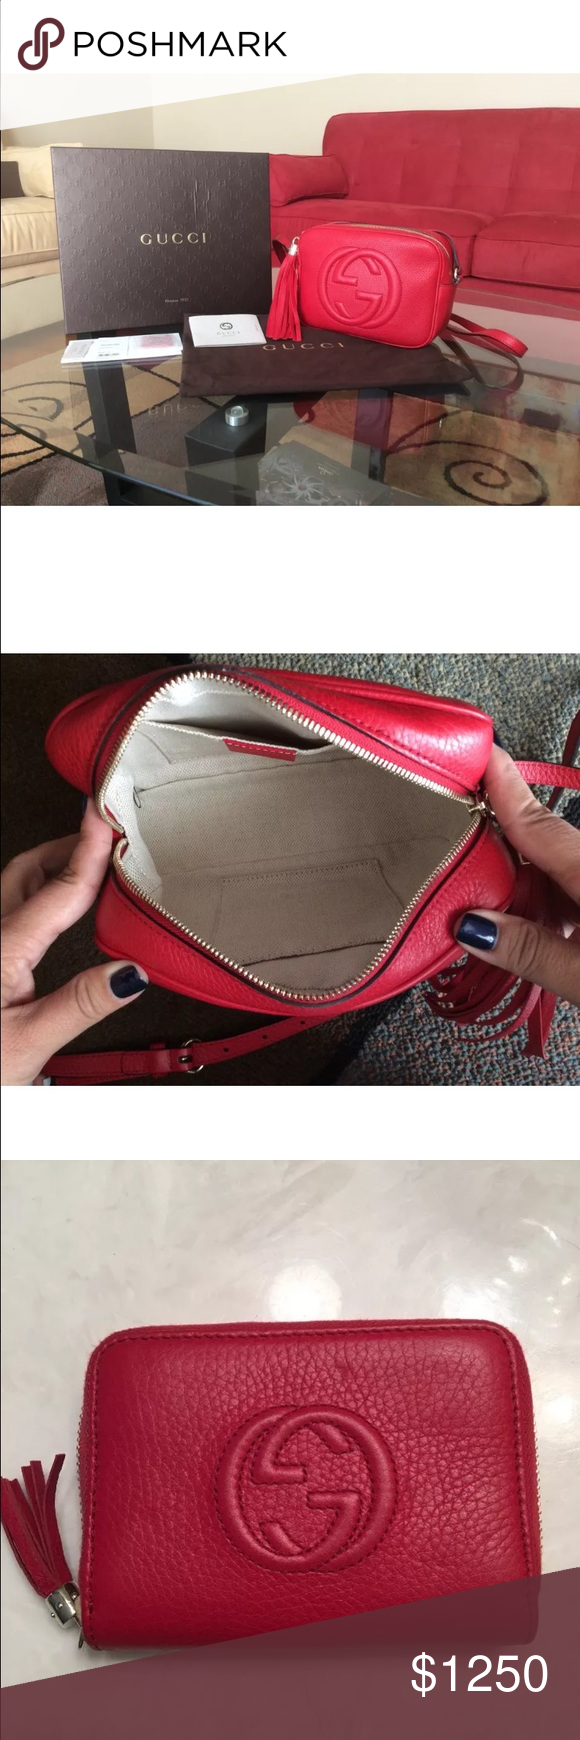 8f1b50b952a6be GUCCI SOHO DISCO BAG AND SOHO WALLET IN RED Disco soho bag is all over  fashion